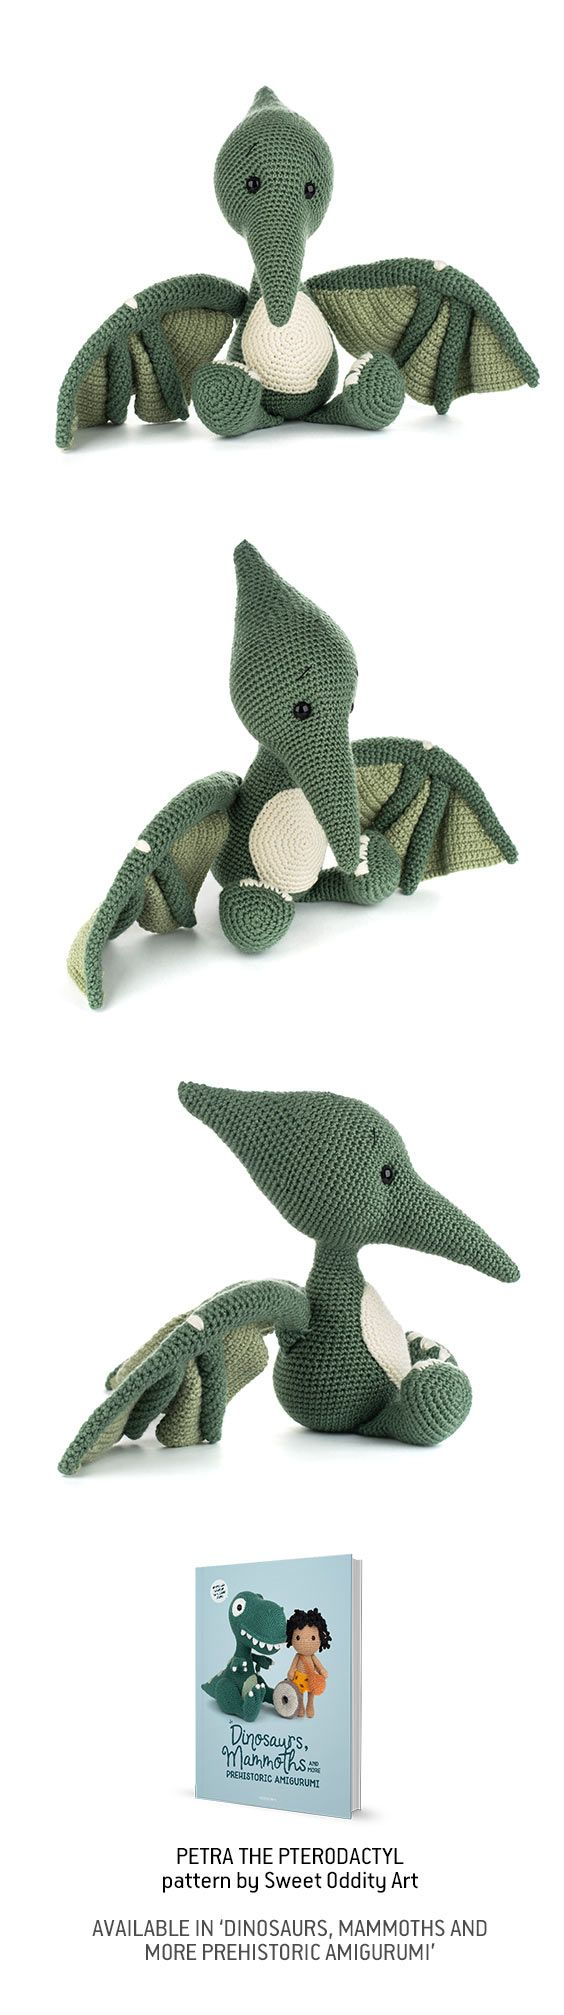 Petra the Pterodactyl - book crochet pattern by Sweet Oddity Art #crochetdinosaurpatterns